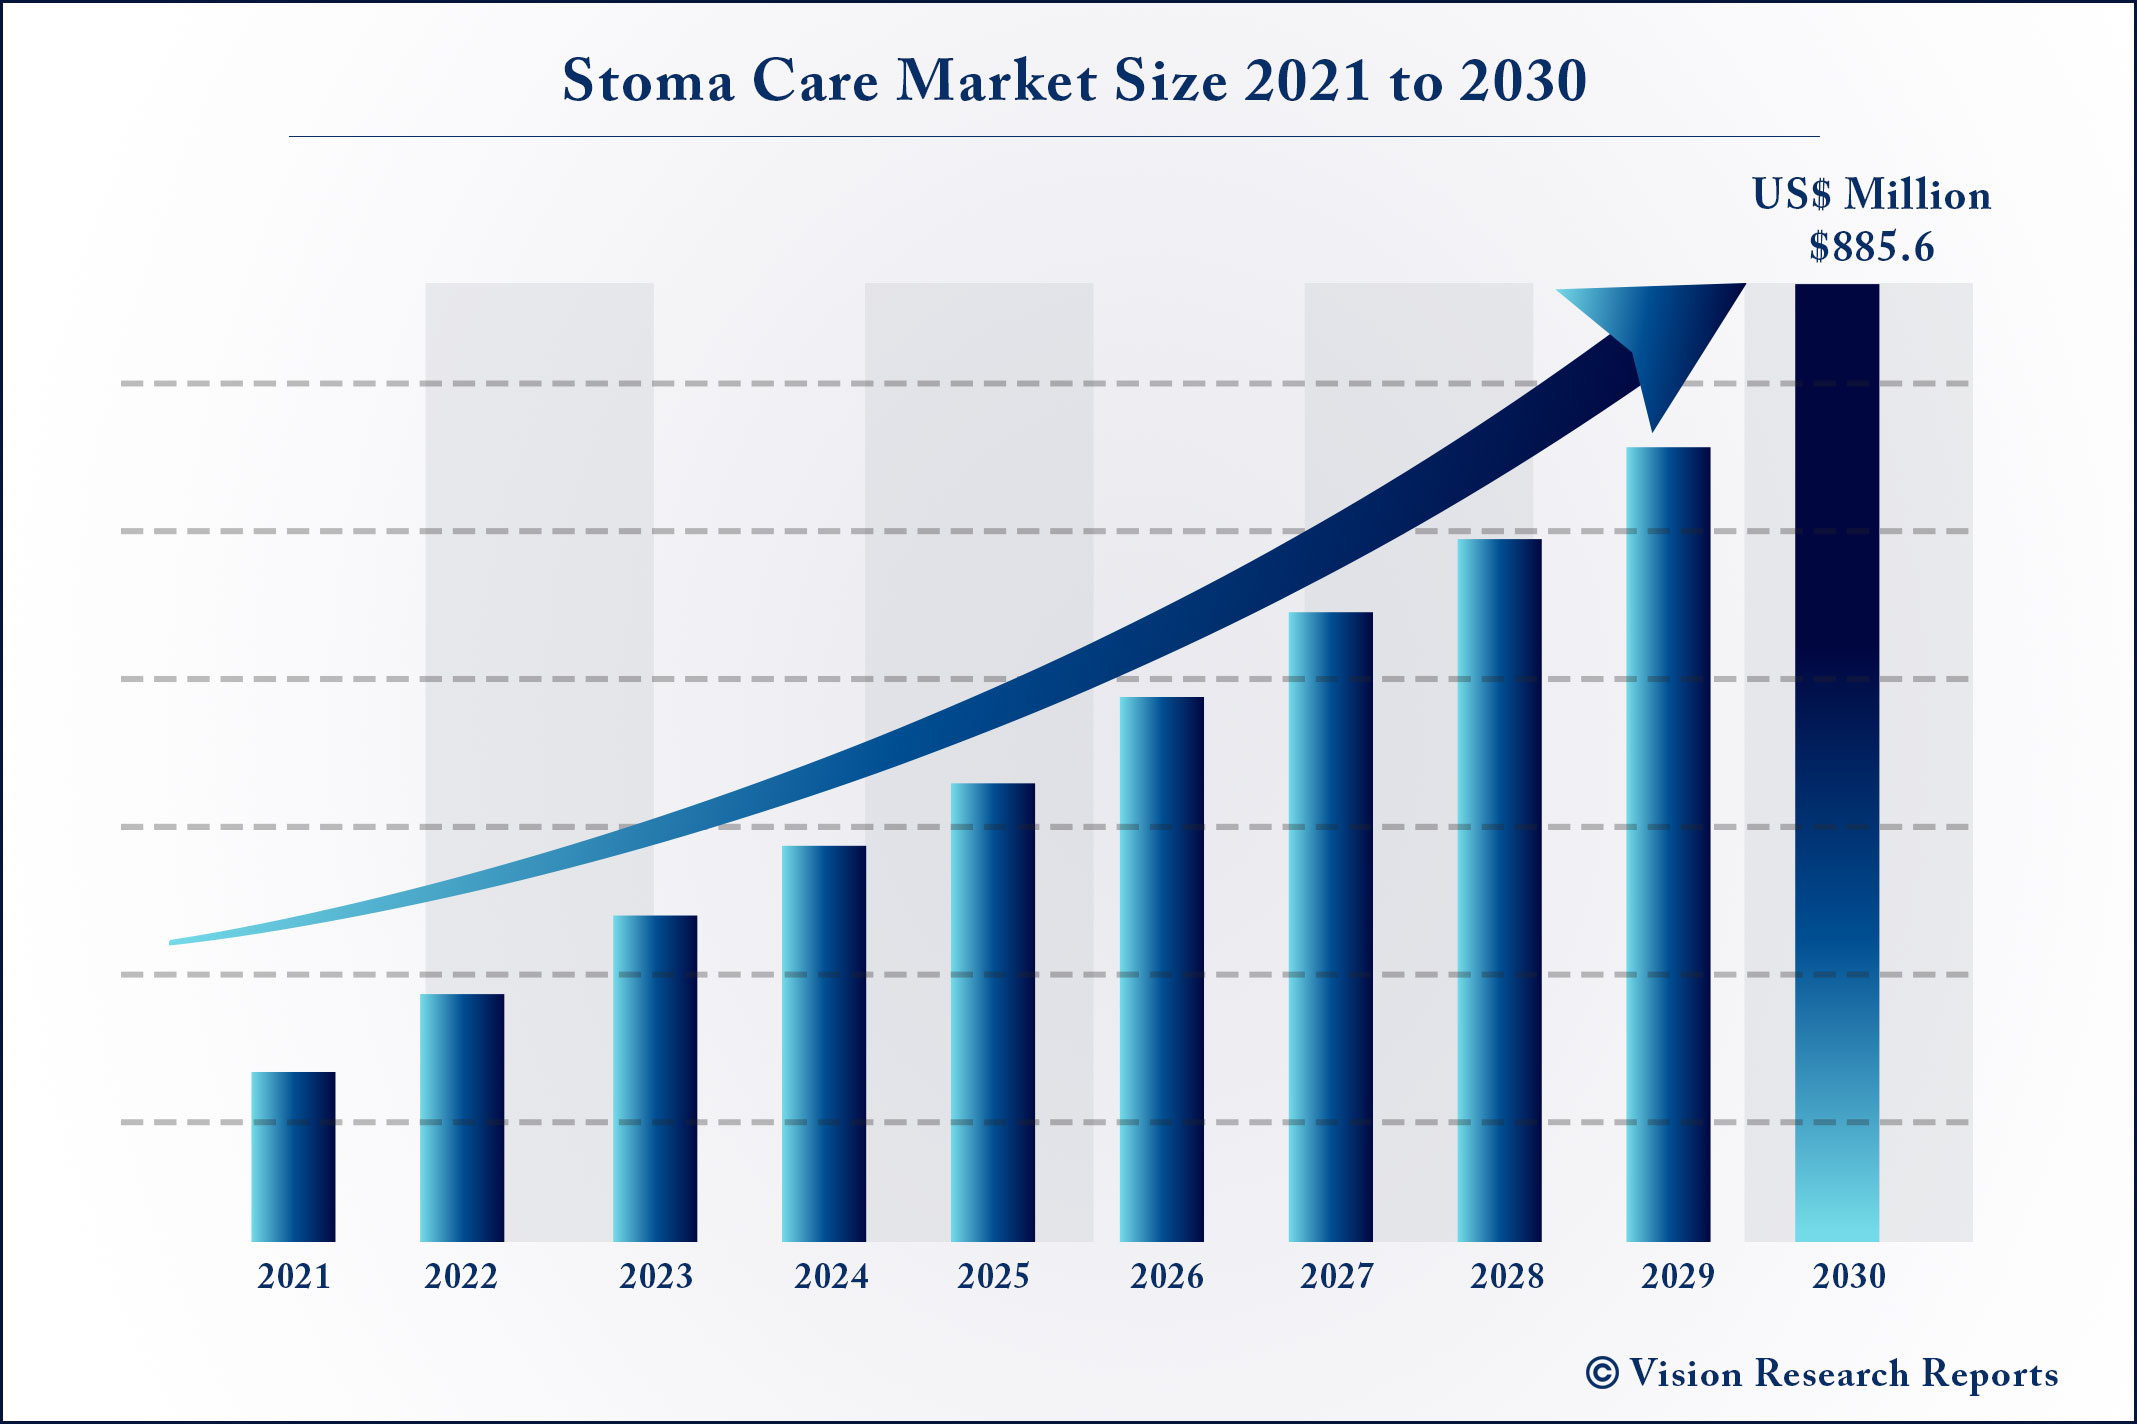 Stoma Care Market Size 2021 to 2030